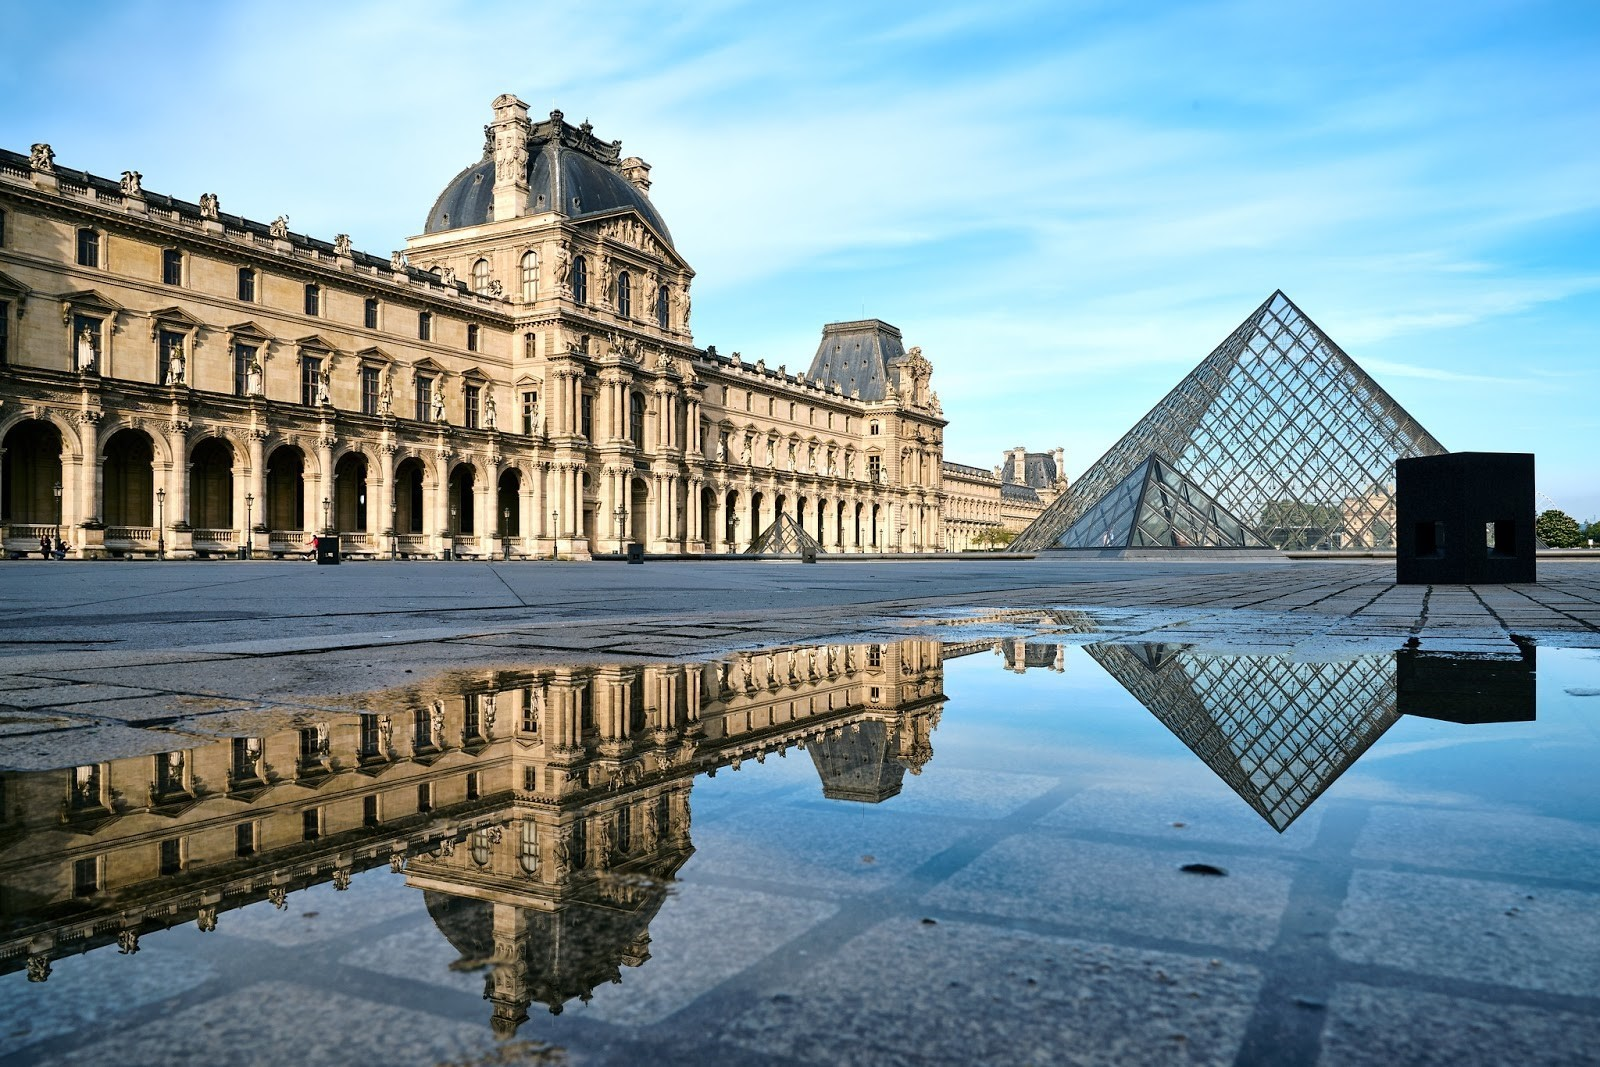 Paris – reflecting on an increase in visitor numbers